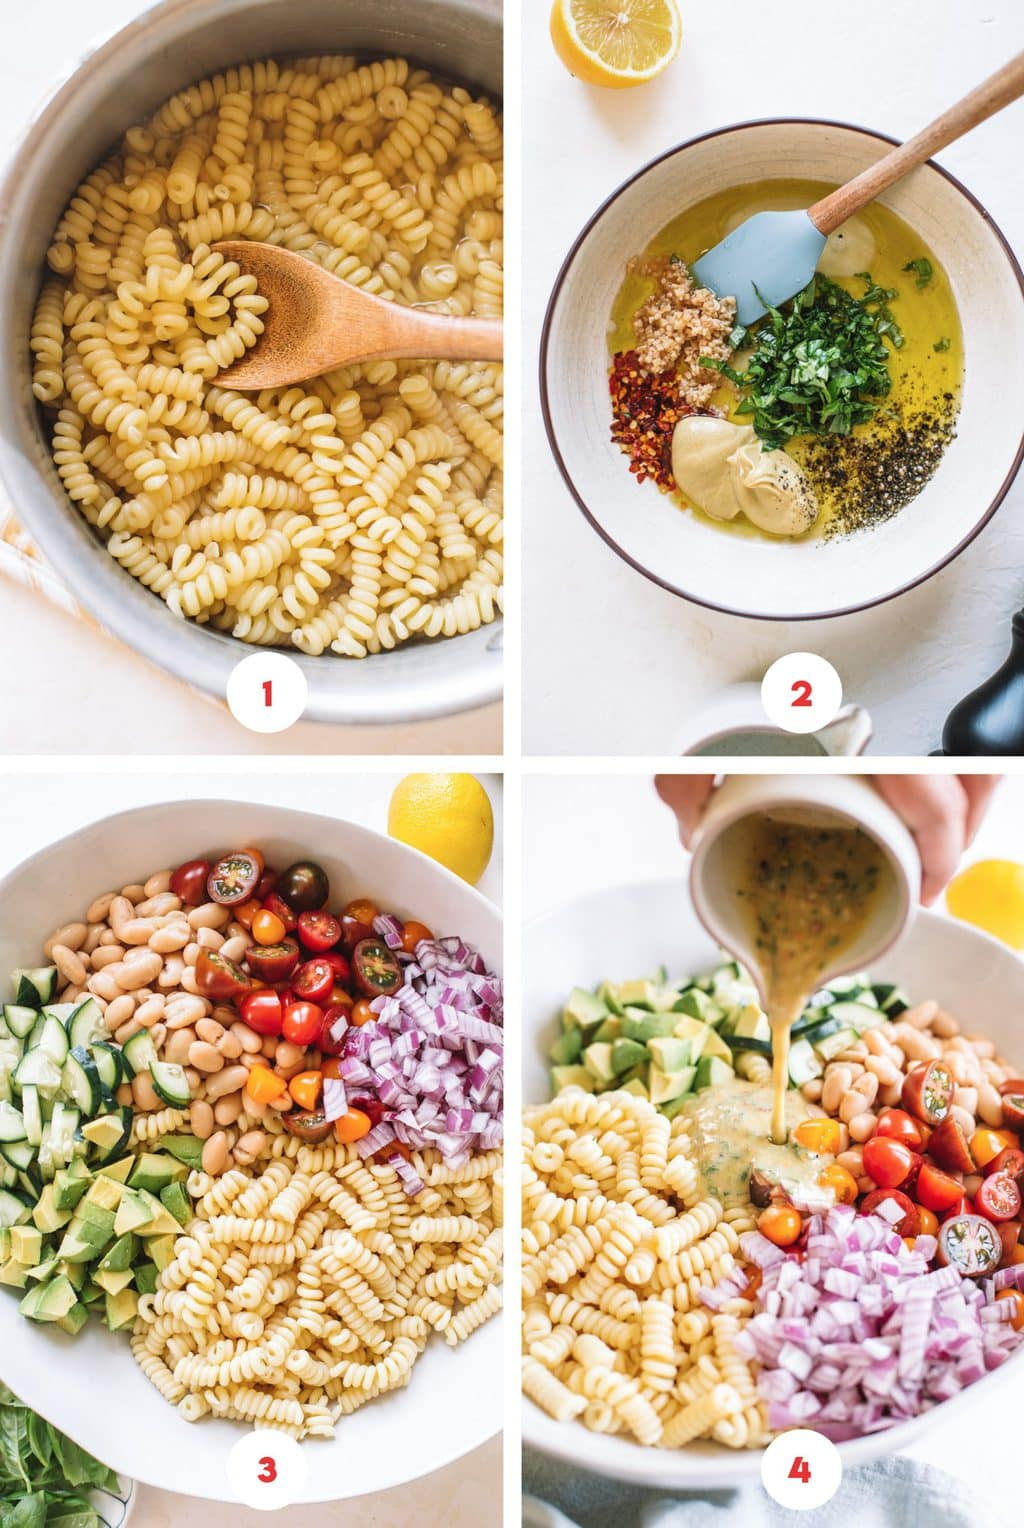 pasta in pot, lemon herb dressing in bowl, pasta salad ingredients in bowl, pouring dressing over pasta salad